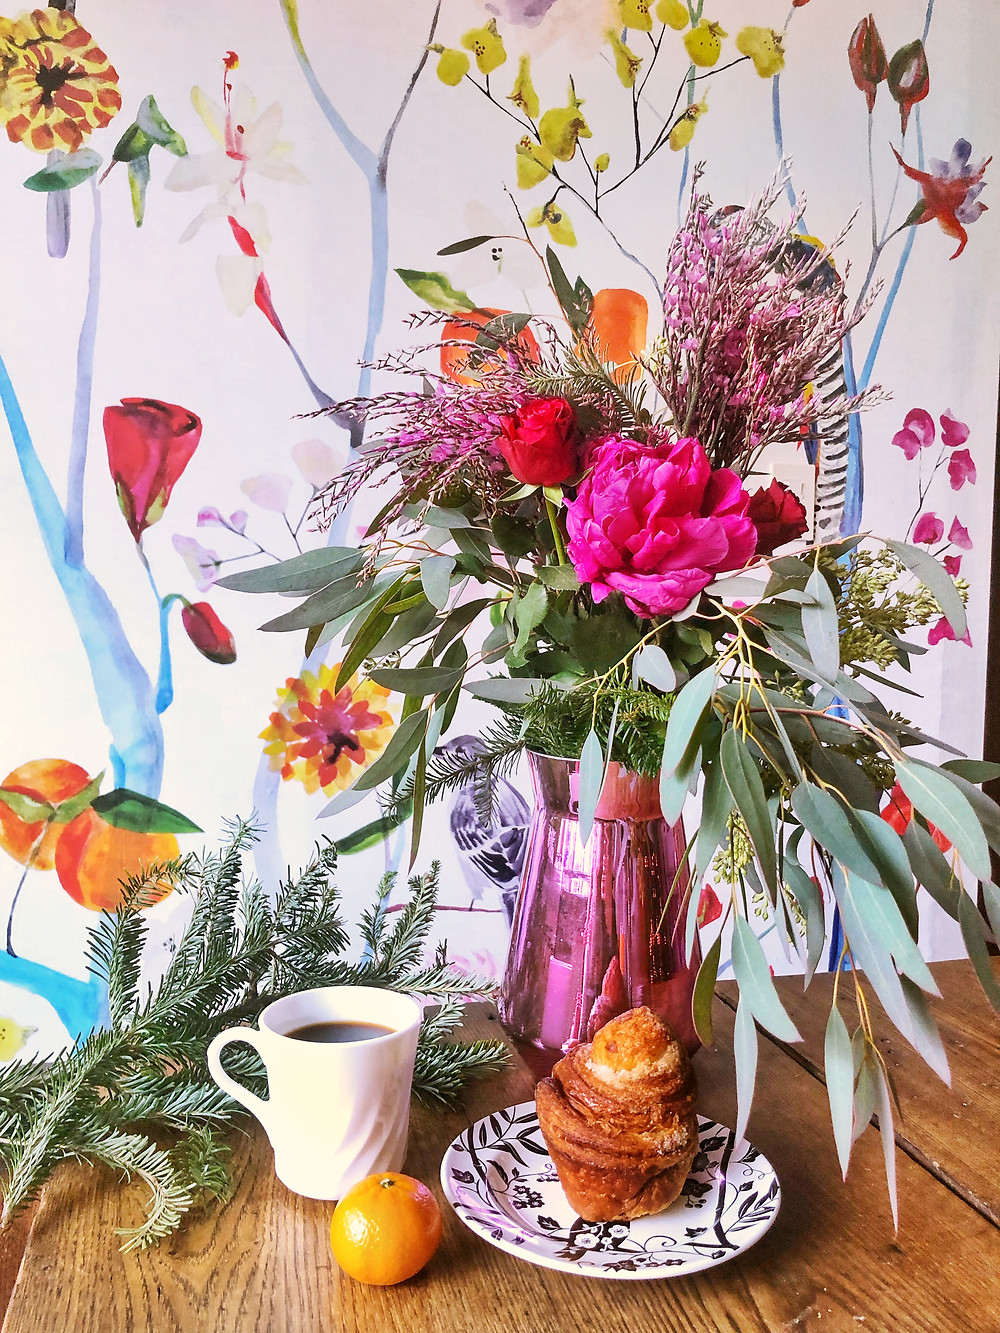 Flowers over breakfast. Coffee, danish and orange. Floral wallpaper with wood table